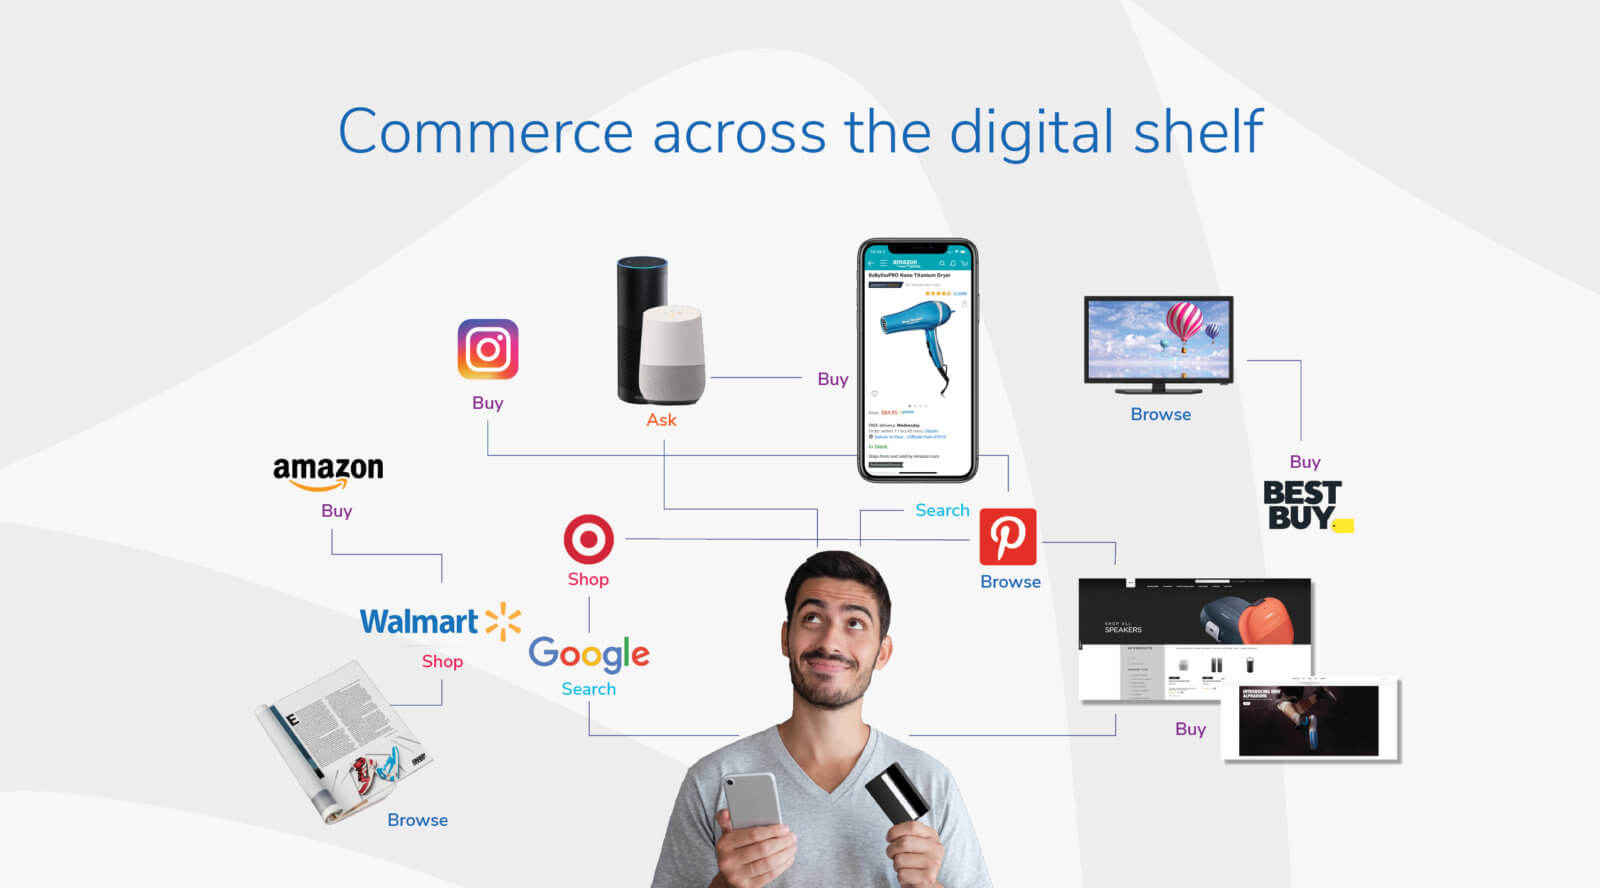 Commerce across the digital shelf